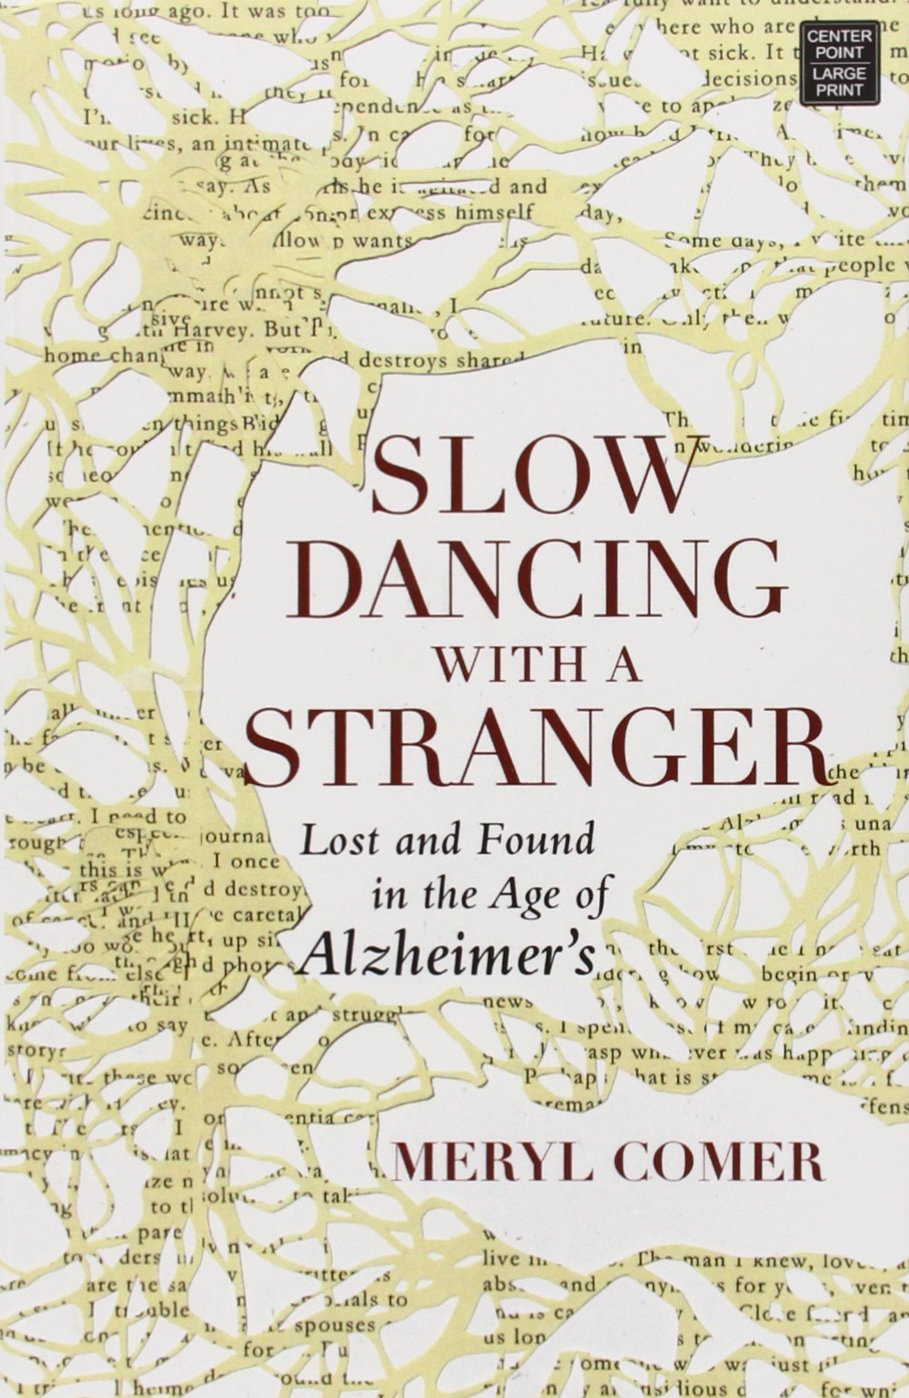 Slow Dancing with a Stranger: Lost and Found in the Age of Alzheimers pdf